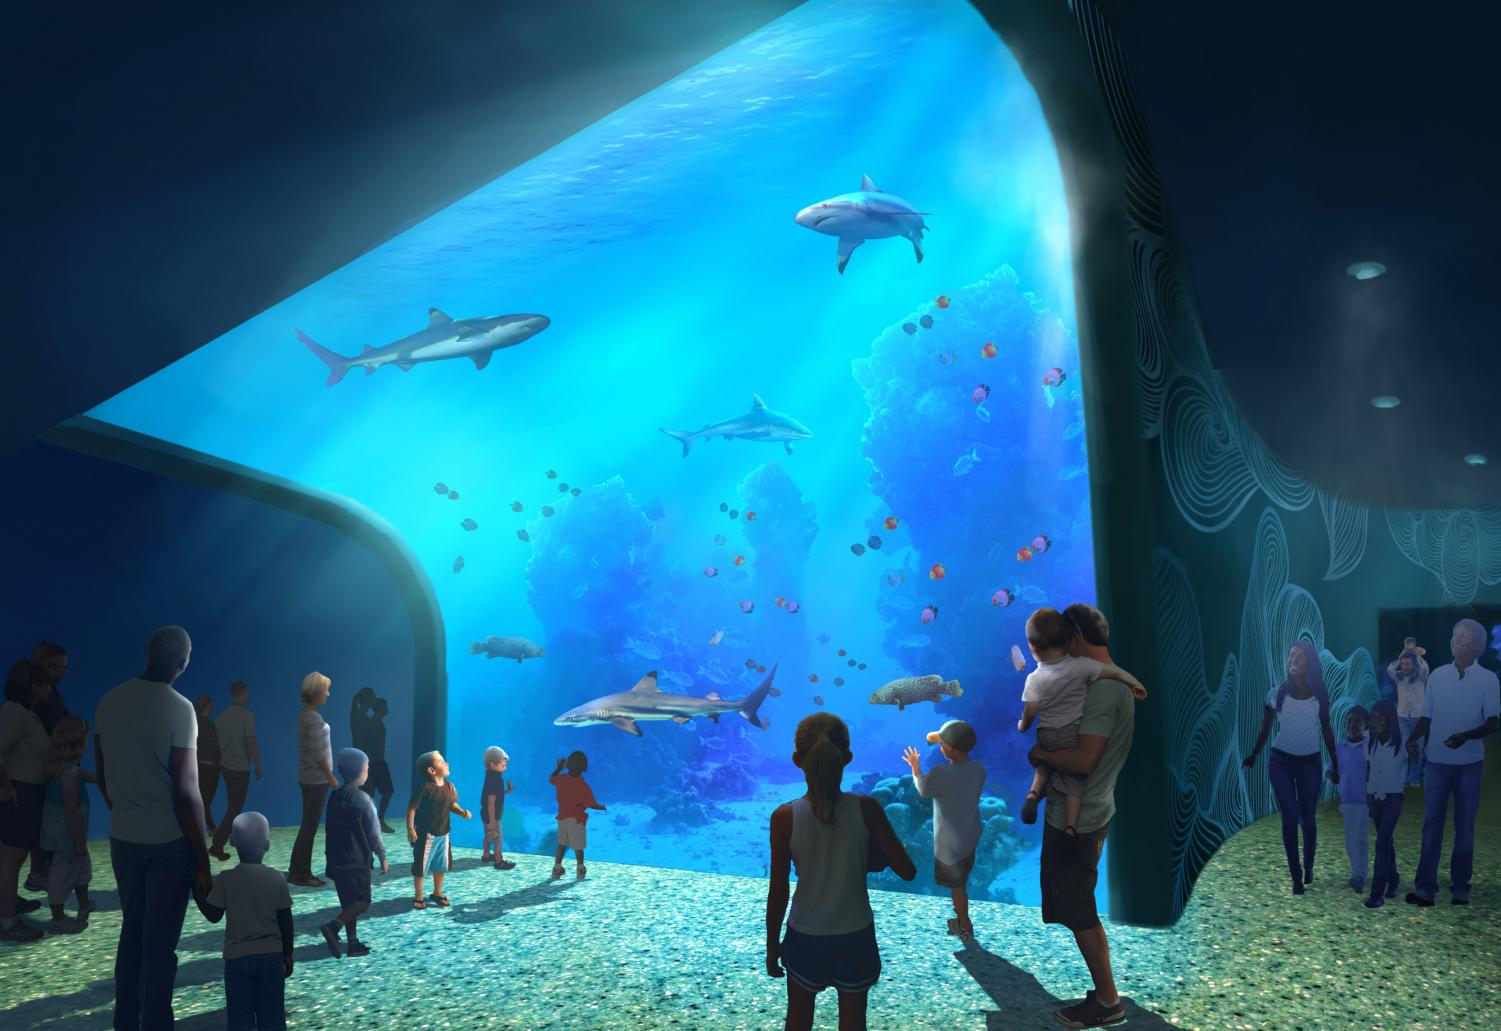 The St. Louis Aquarium is working on several exhibits, one of which is the Shark Canyon, which will include over 30 sharks and rays.